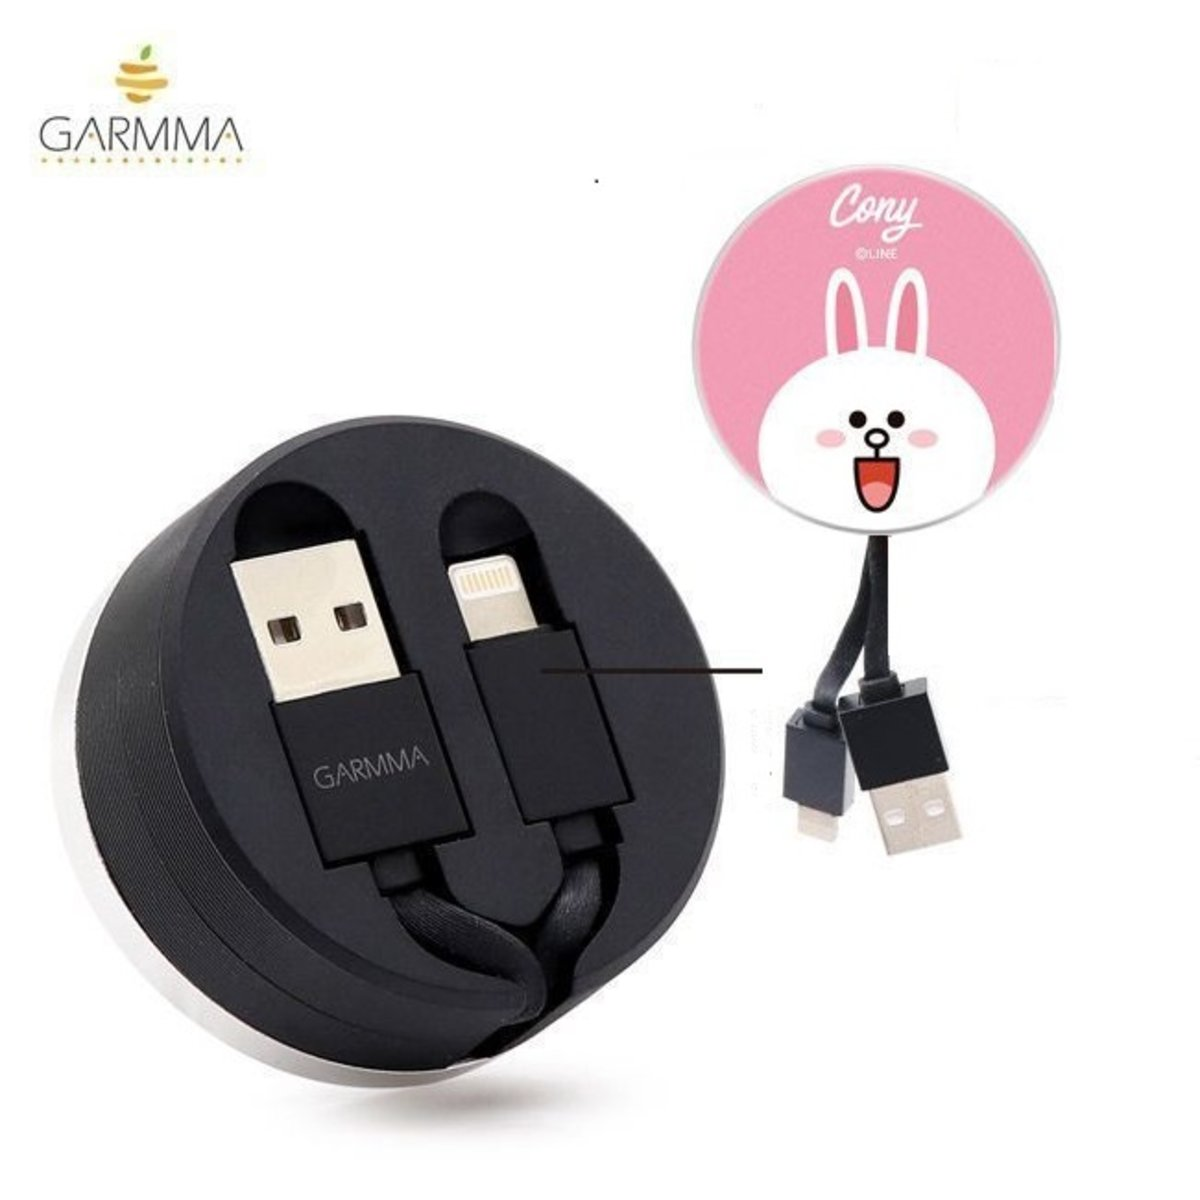 Line Friends Cony Extracted Extension Lightning Cable (Apple) 4710150863535